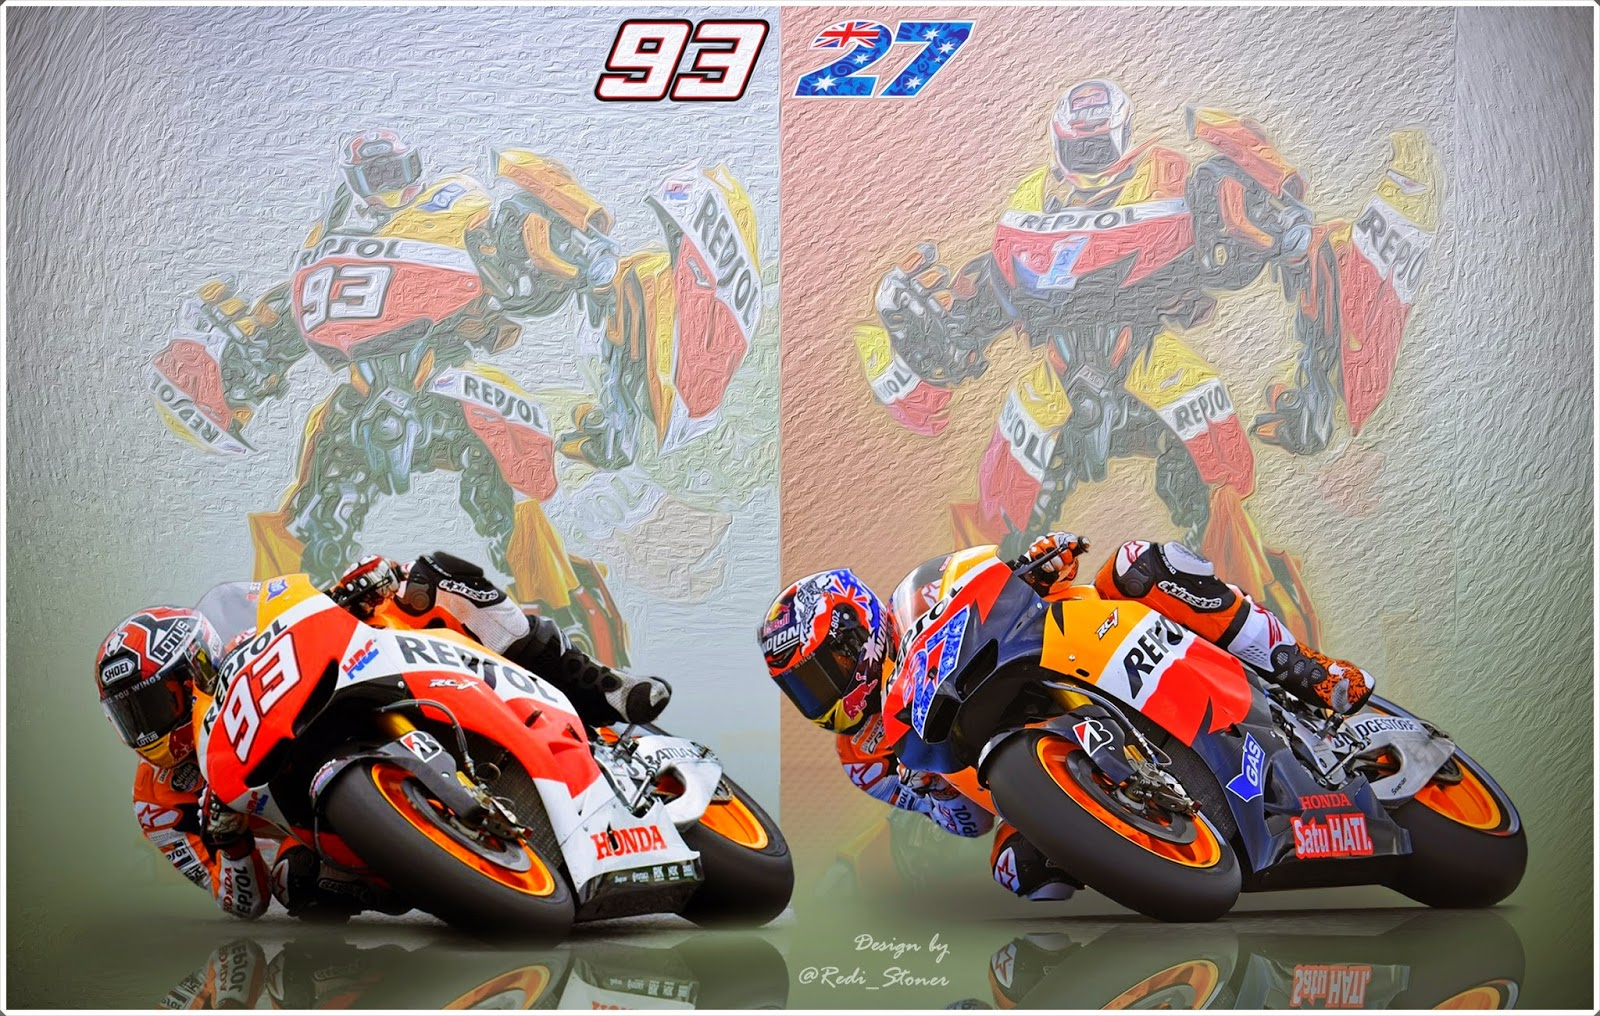 Redi Stoner Casey Stoner And Marc Marquez Wallpaper